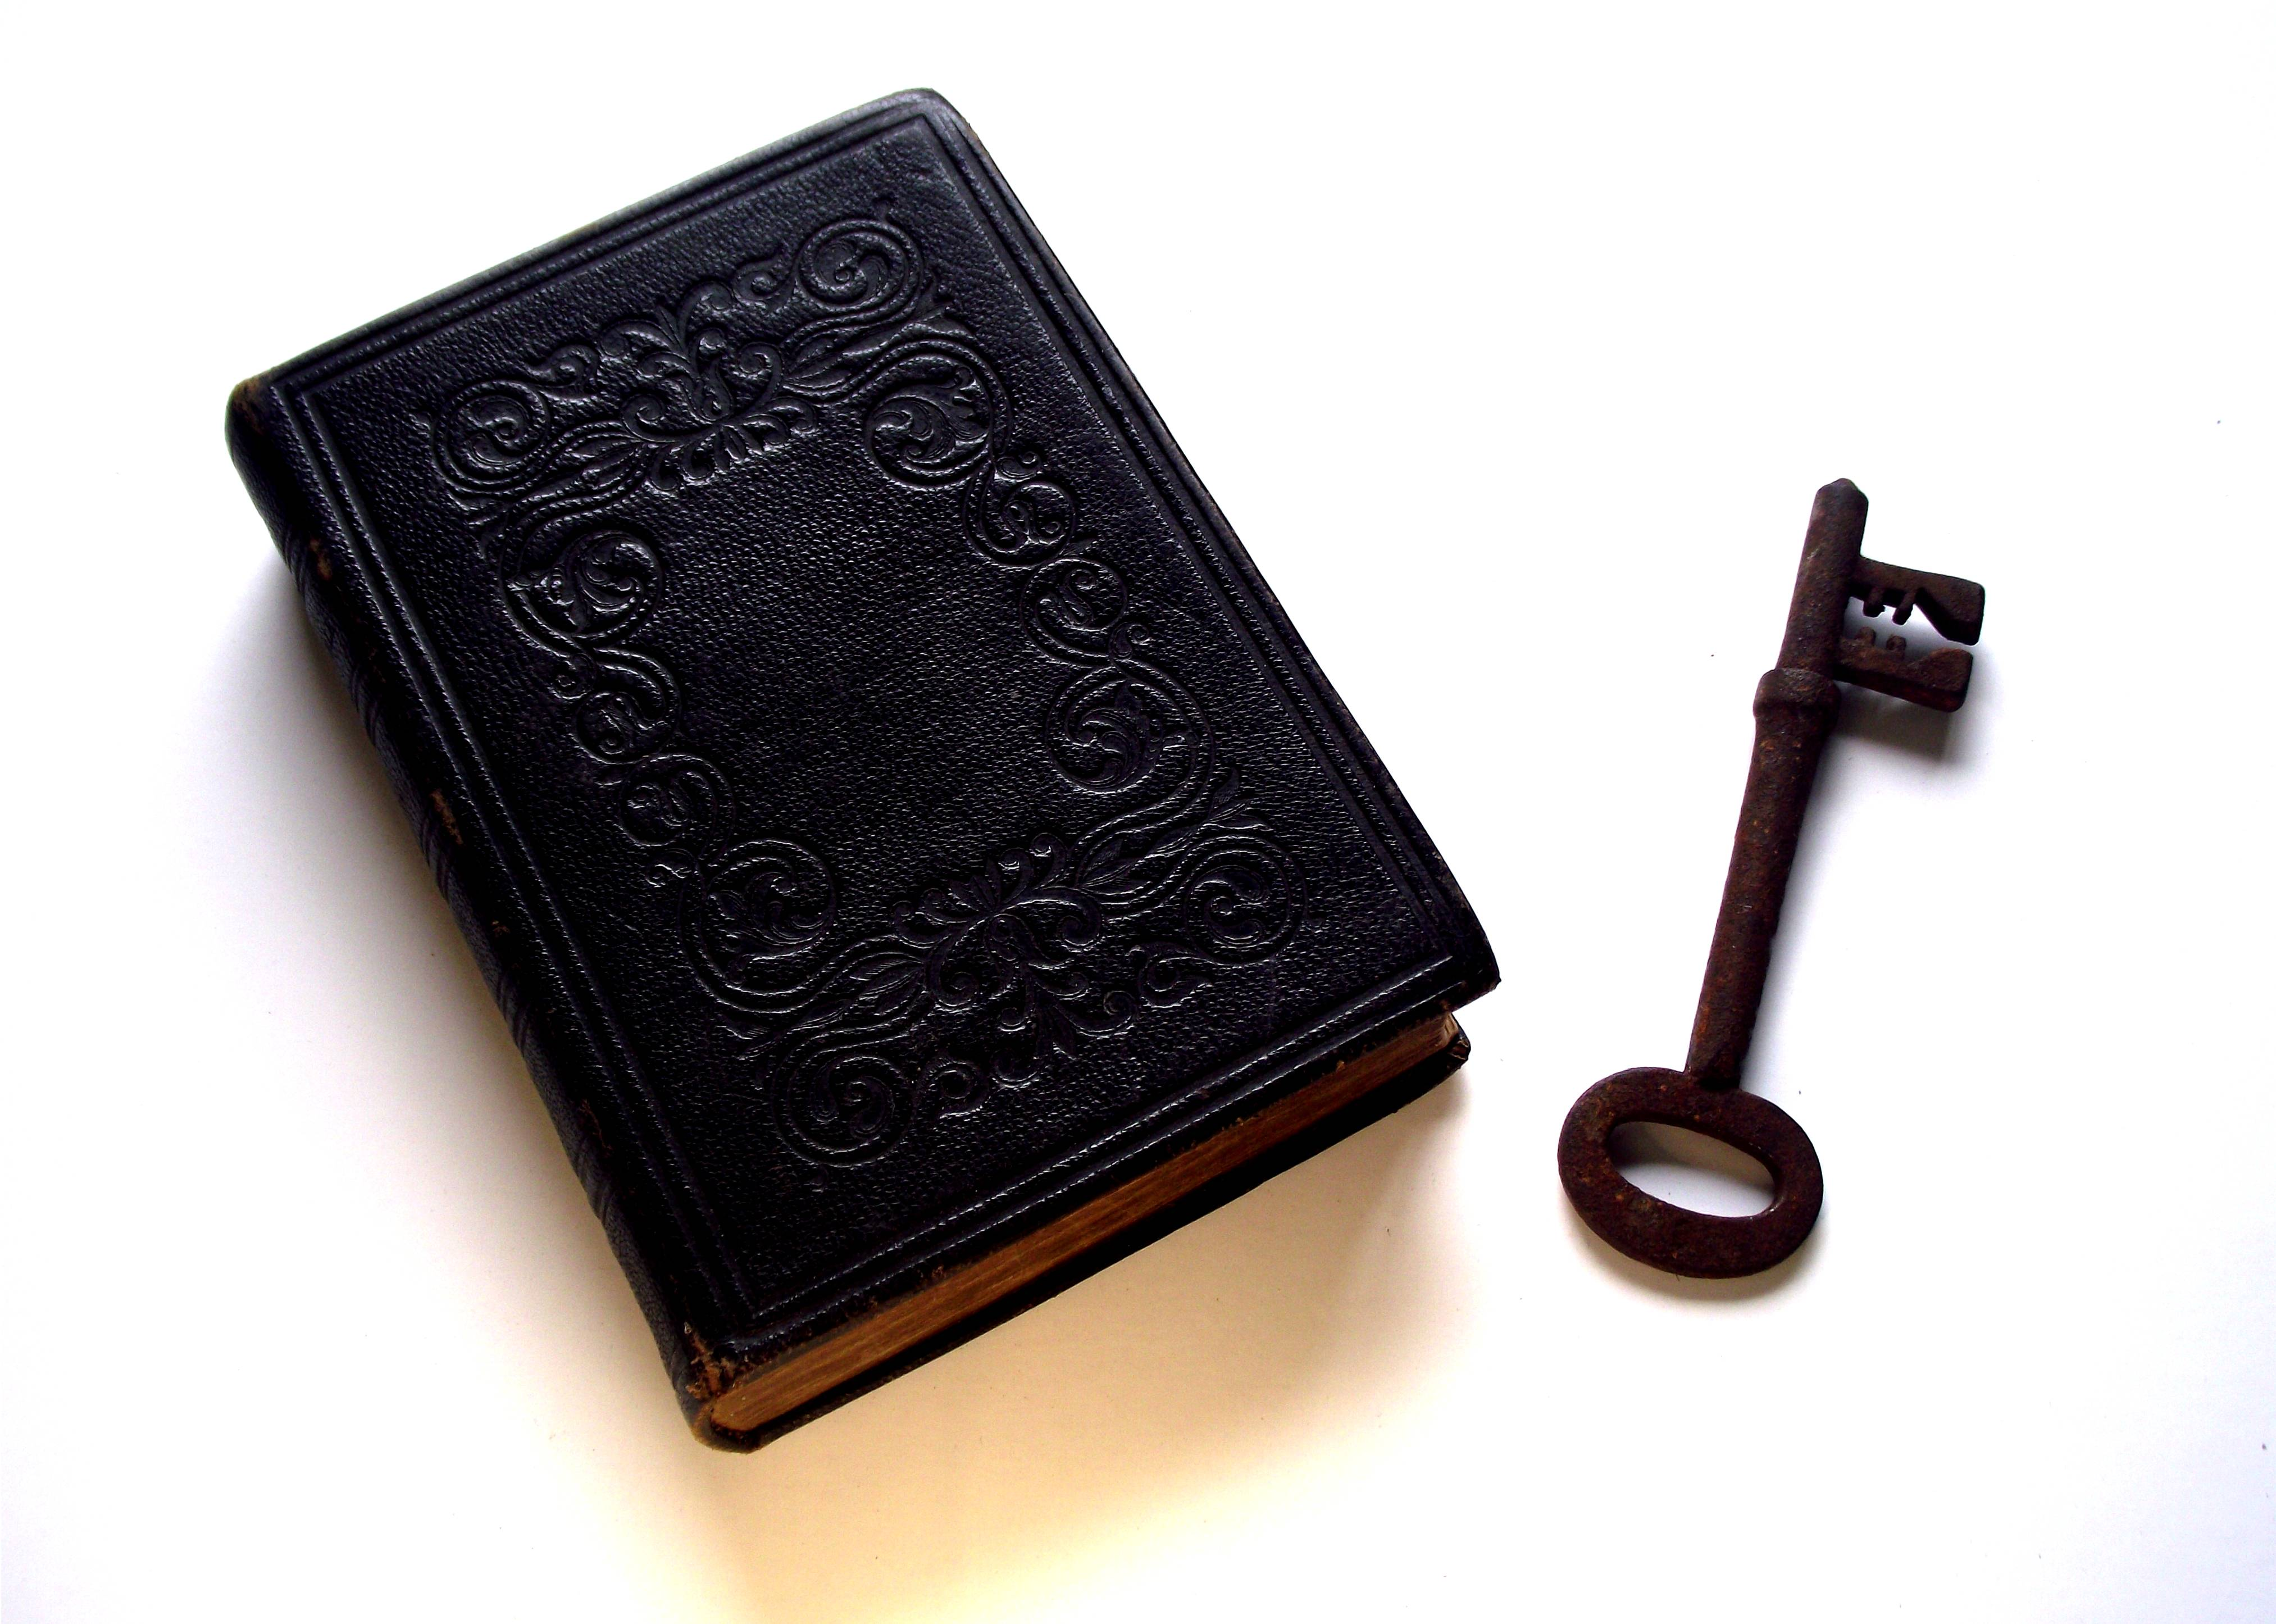 Bible_and_Key_Divination.jpg